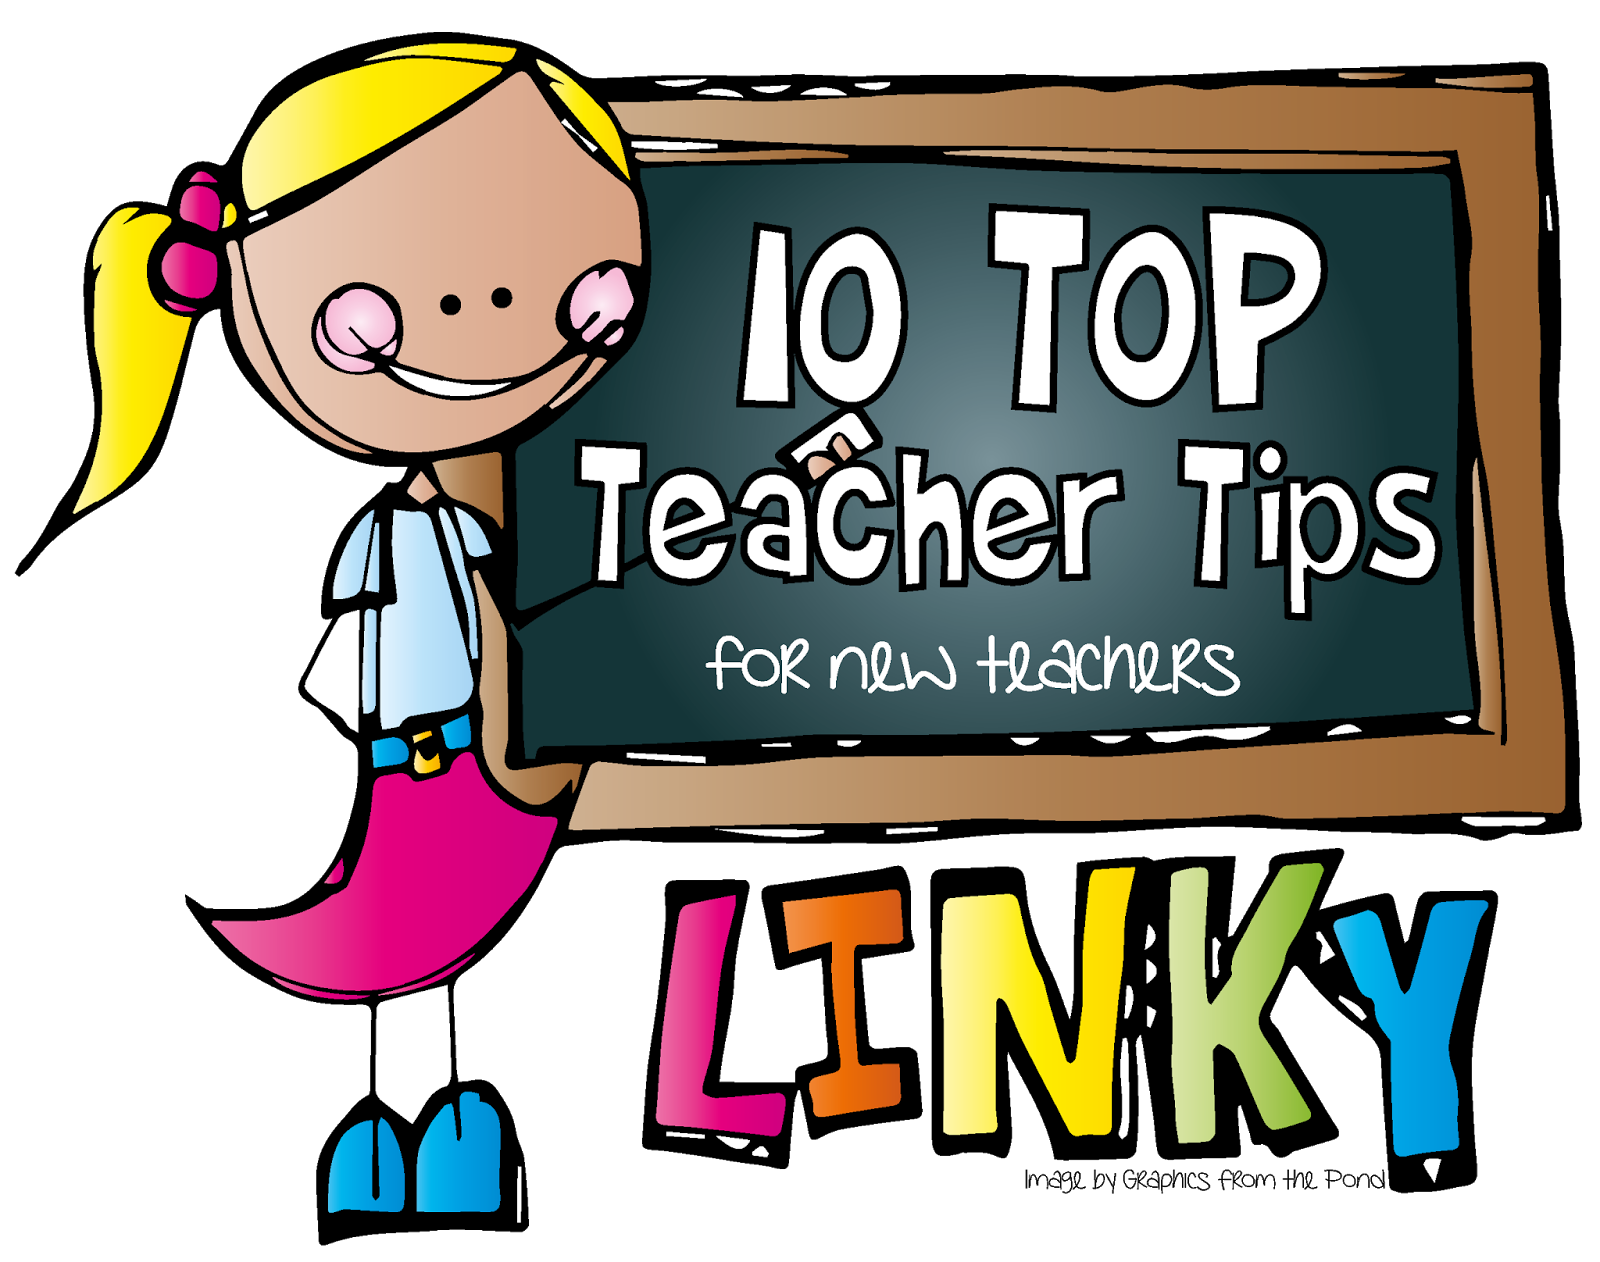 Learning clipart top management. Behavior for teachers